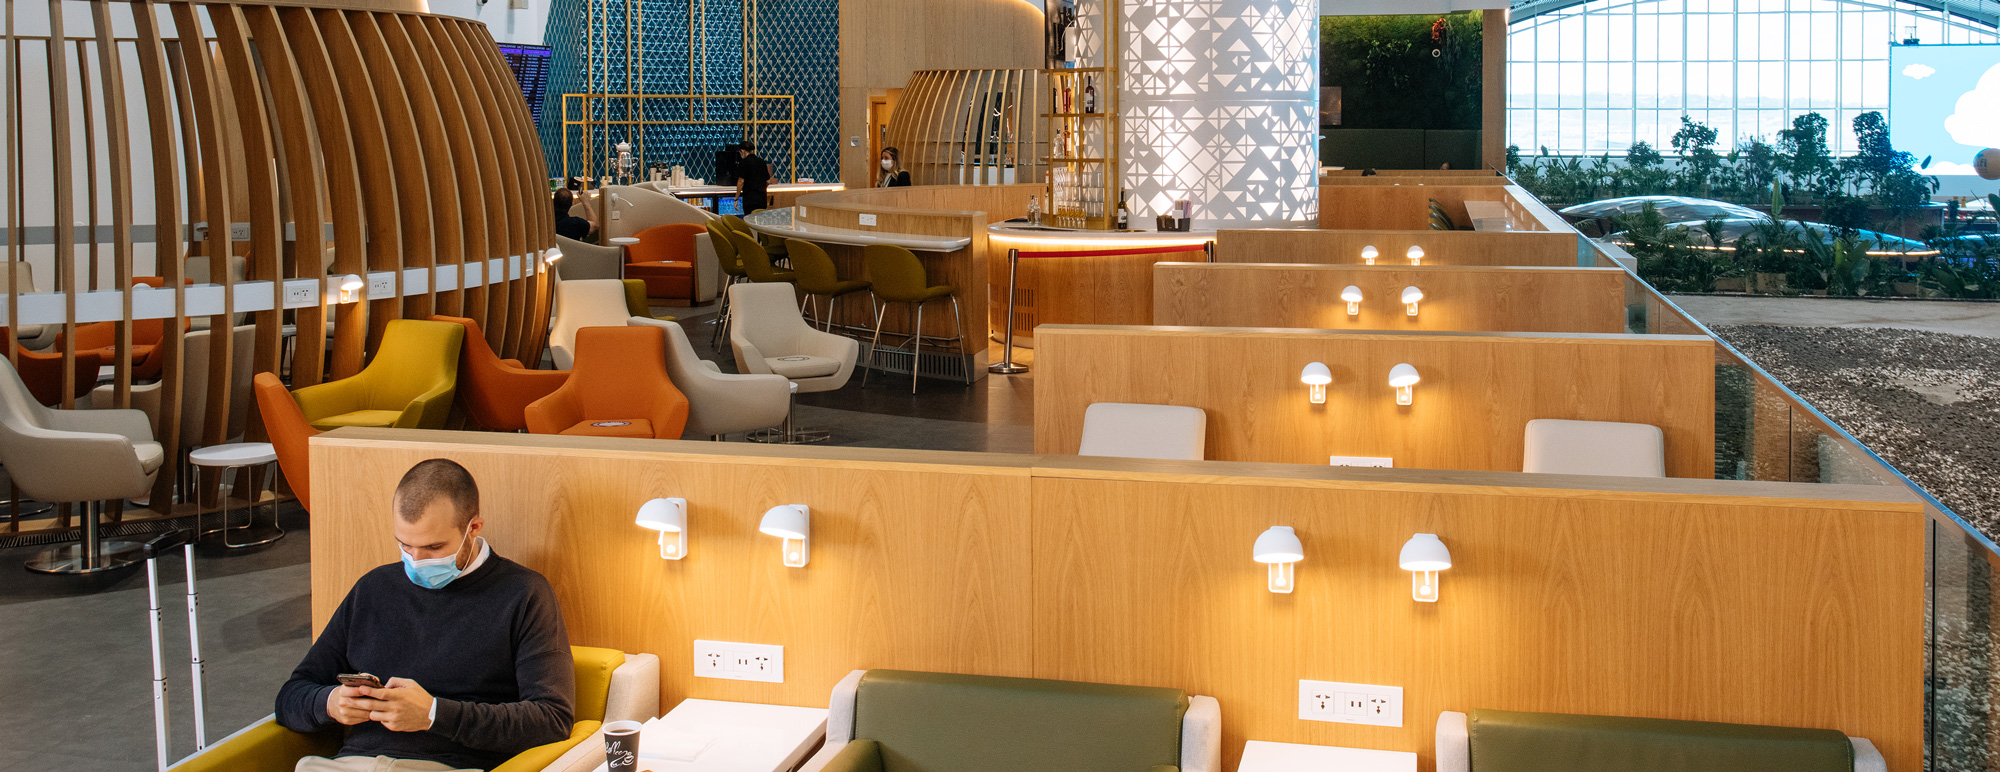 SkyTeam Lounges Have Safety in Mind 24/7